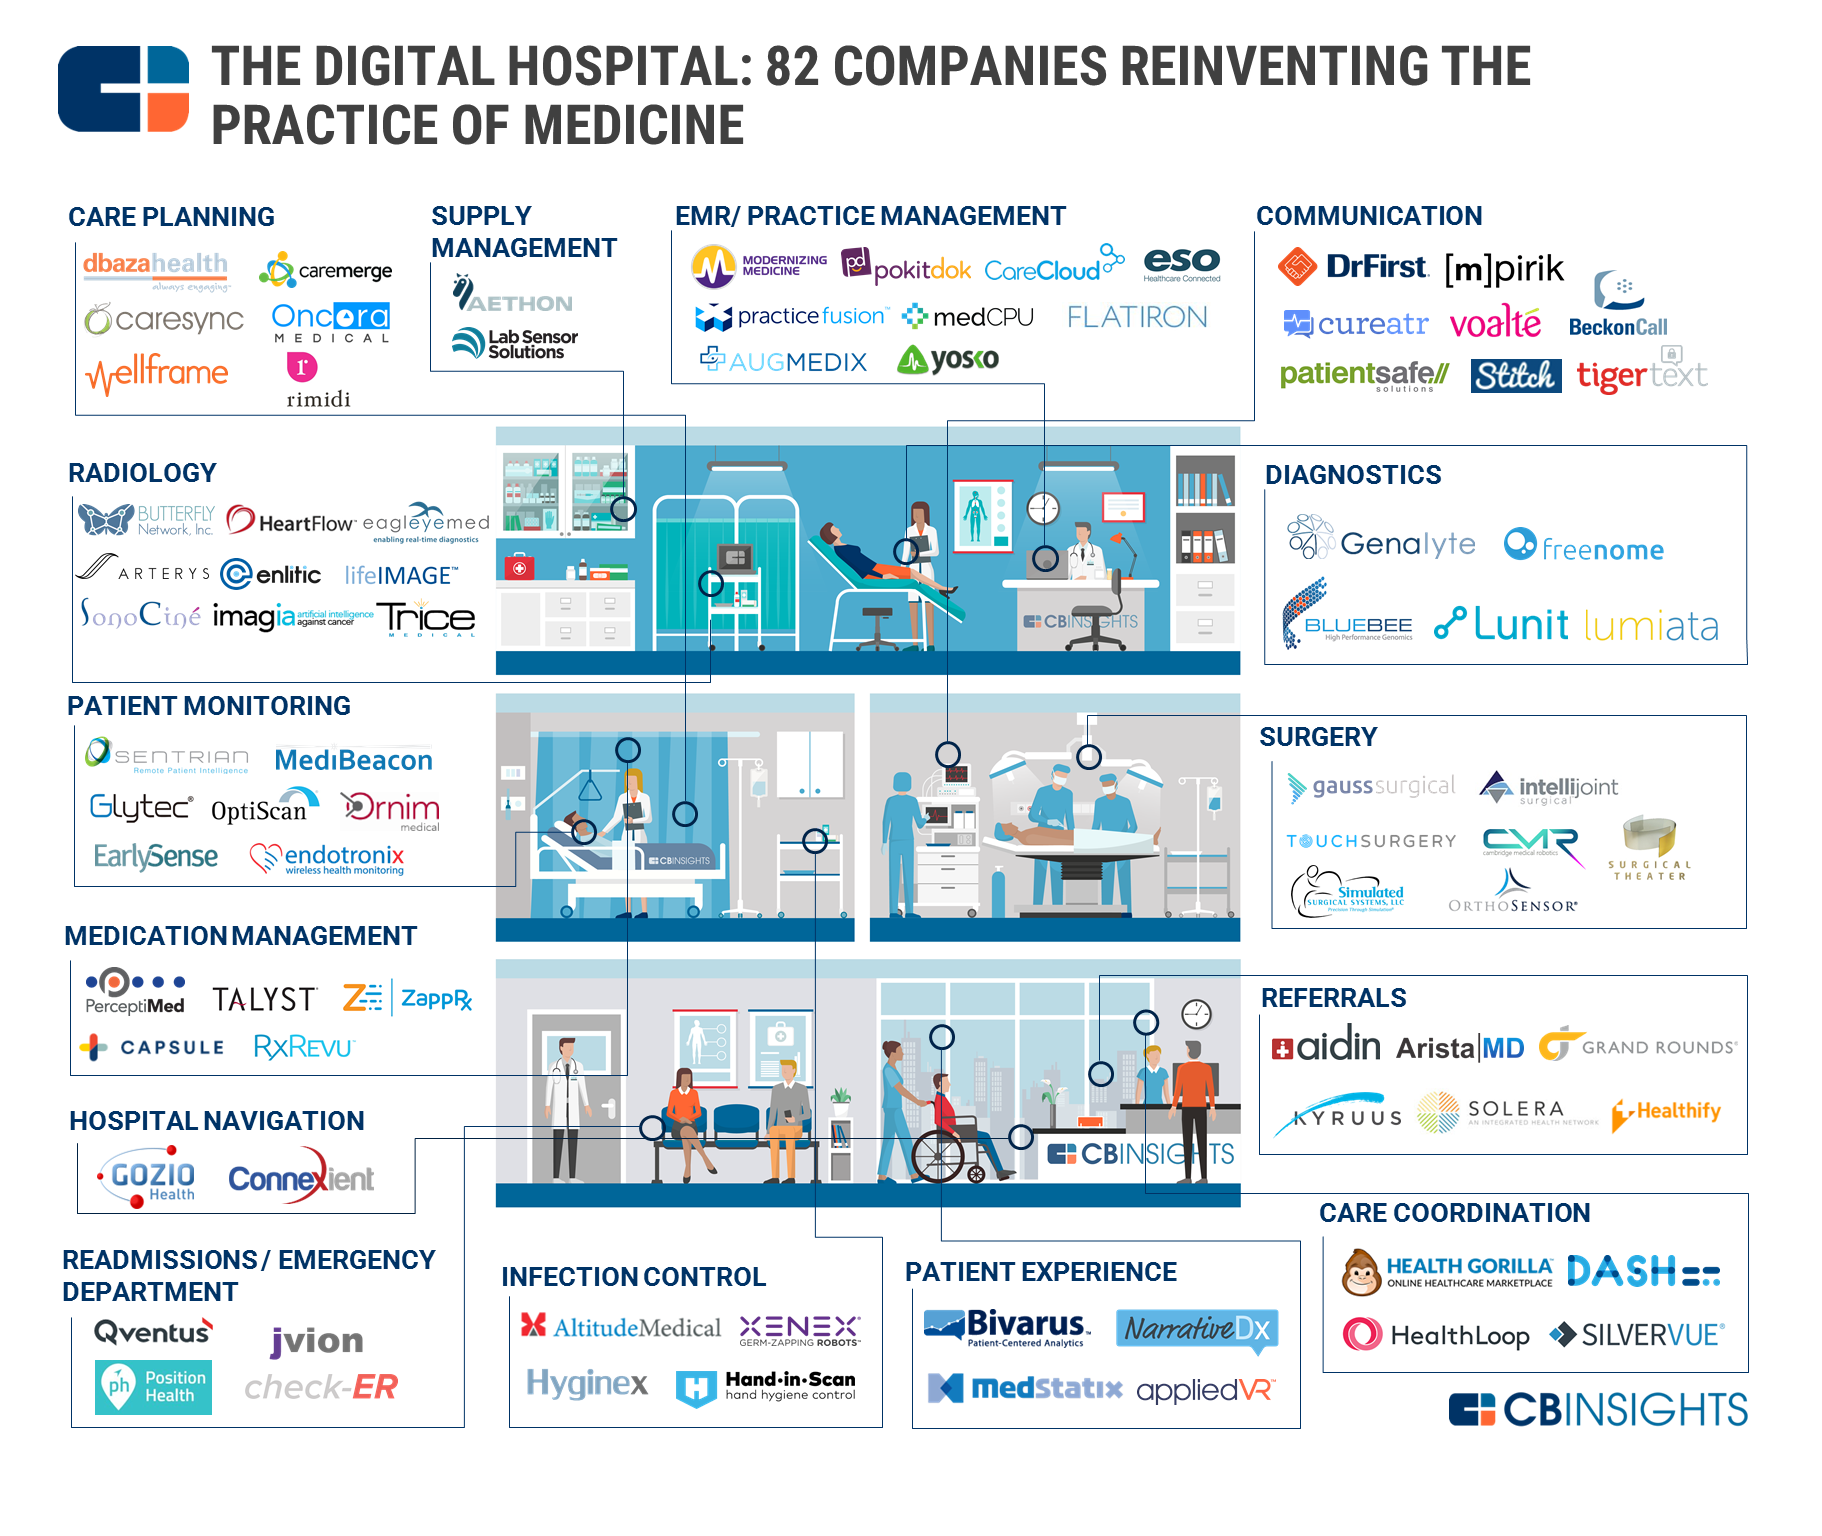 Digital Hospital graphic updated